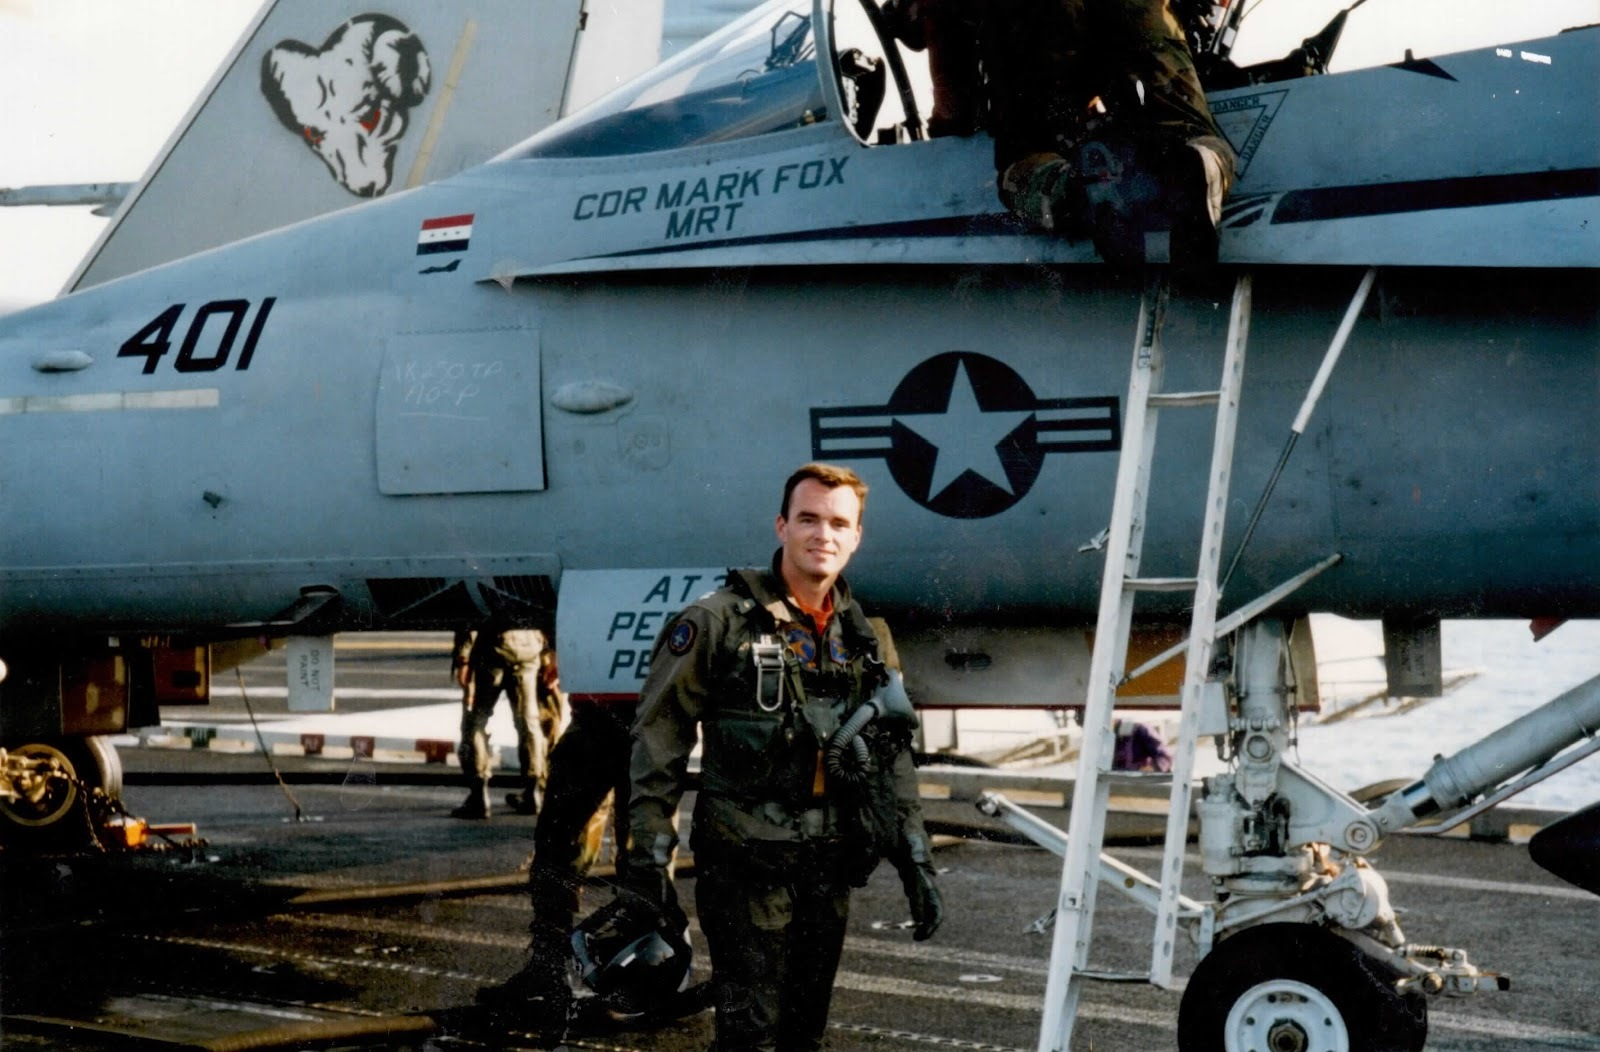 Eric in front of F-14 on aircraft carrier